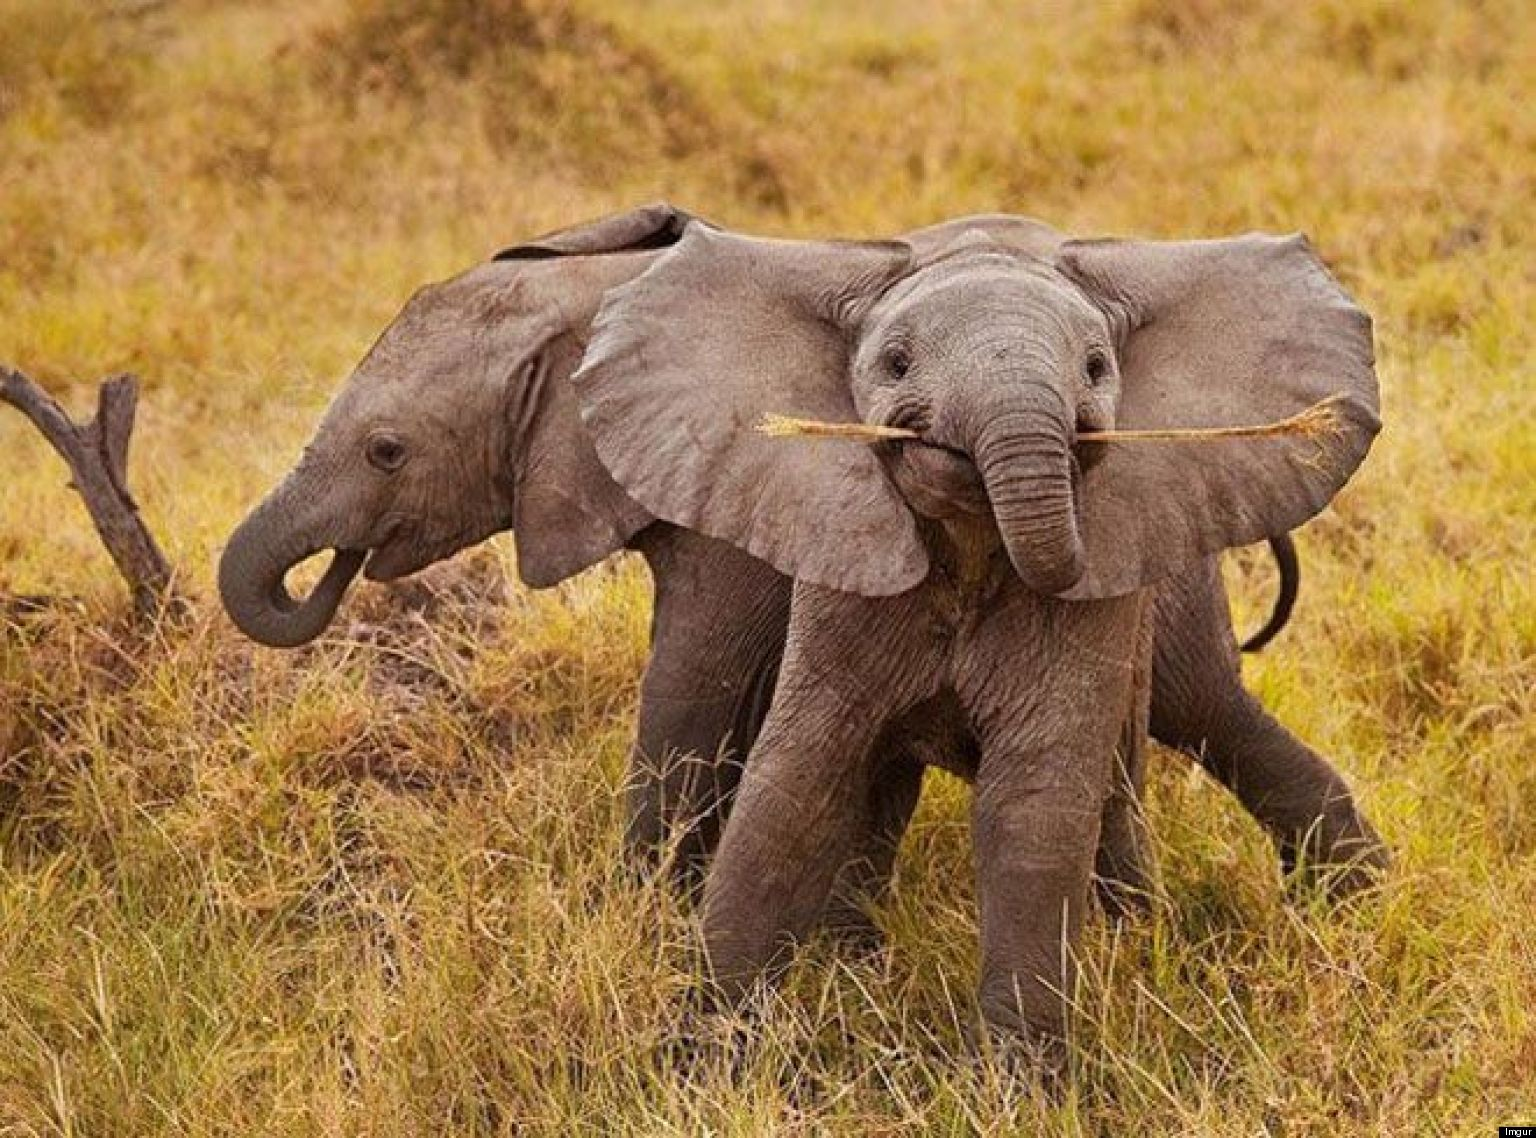 Smiling Baby Elephant Is The Cutest (PHOTO) | HuffPost